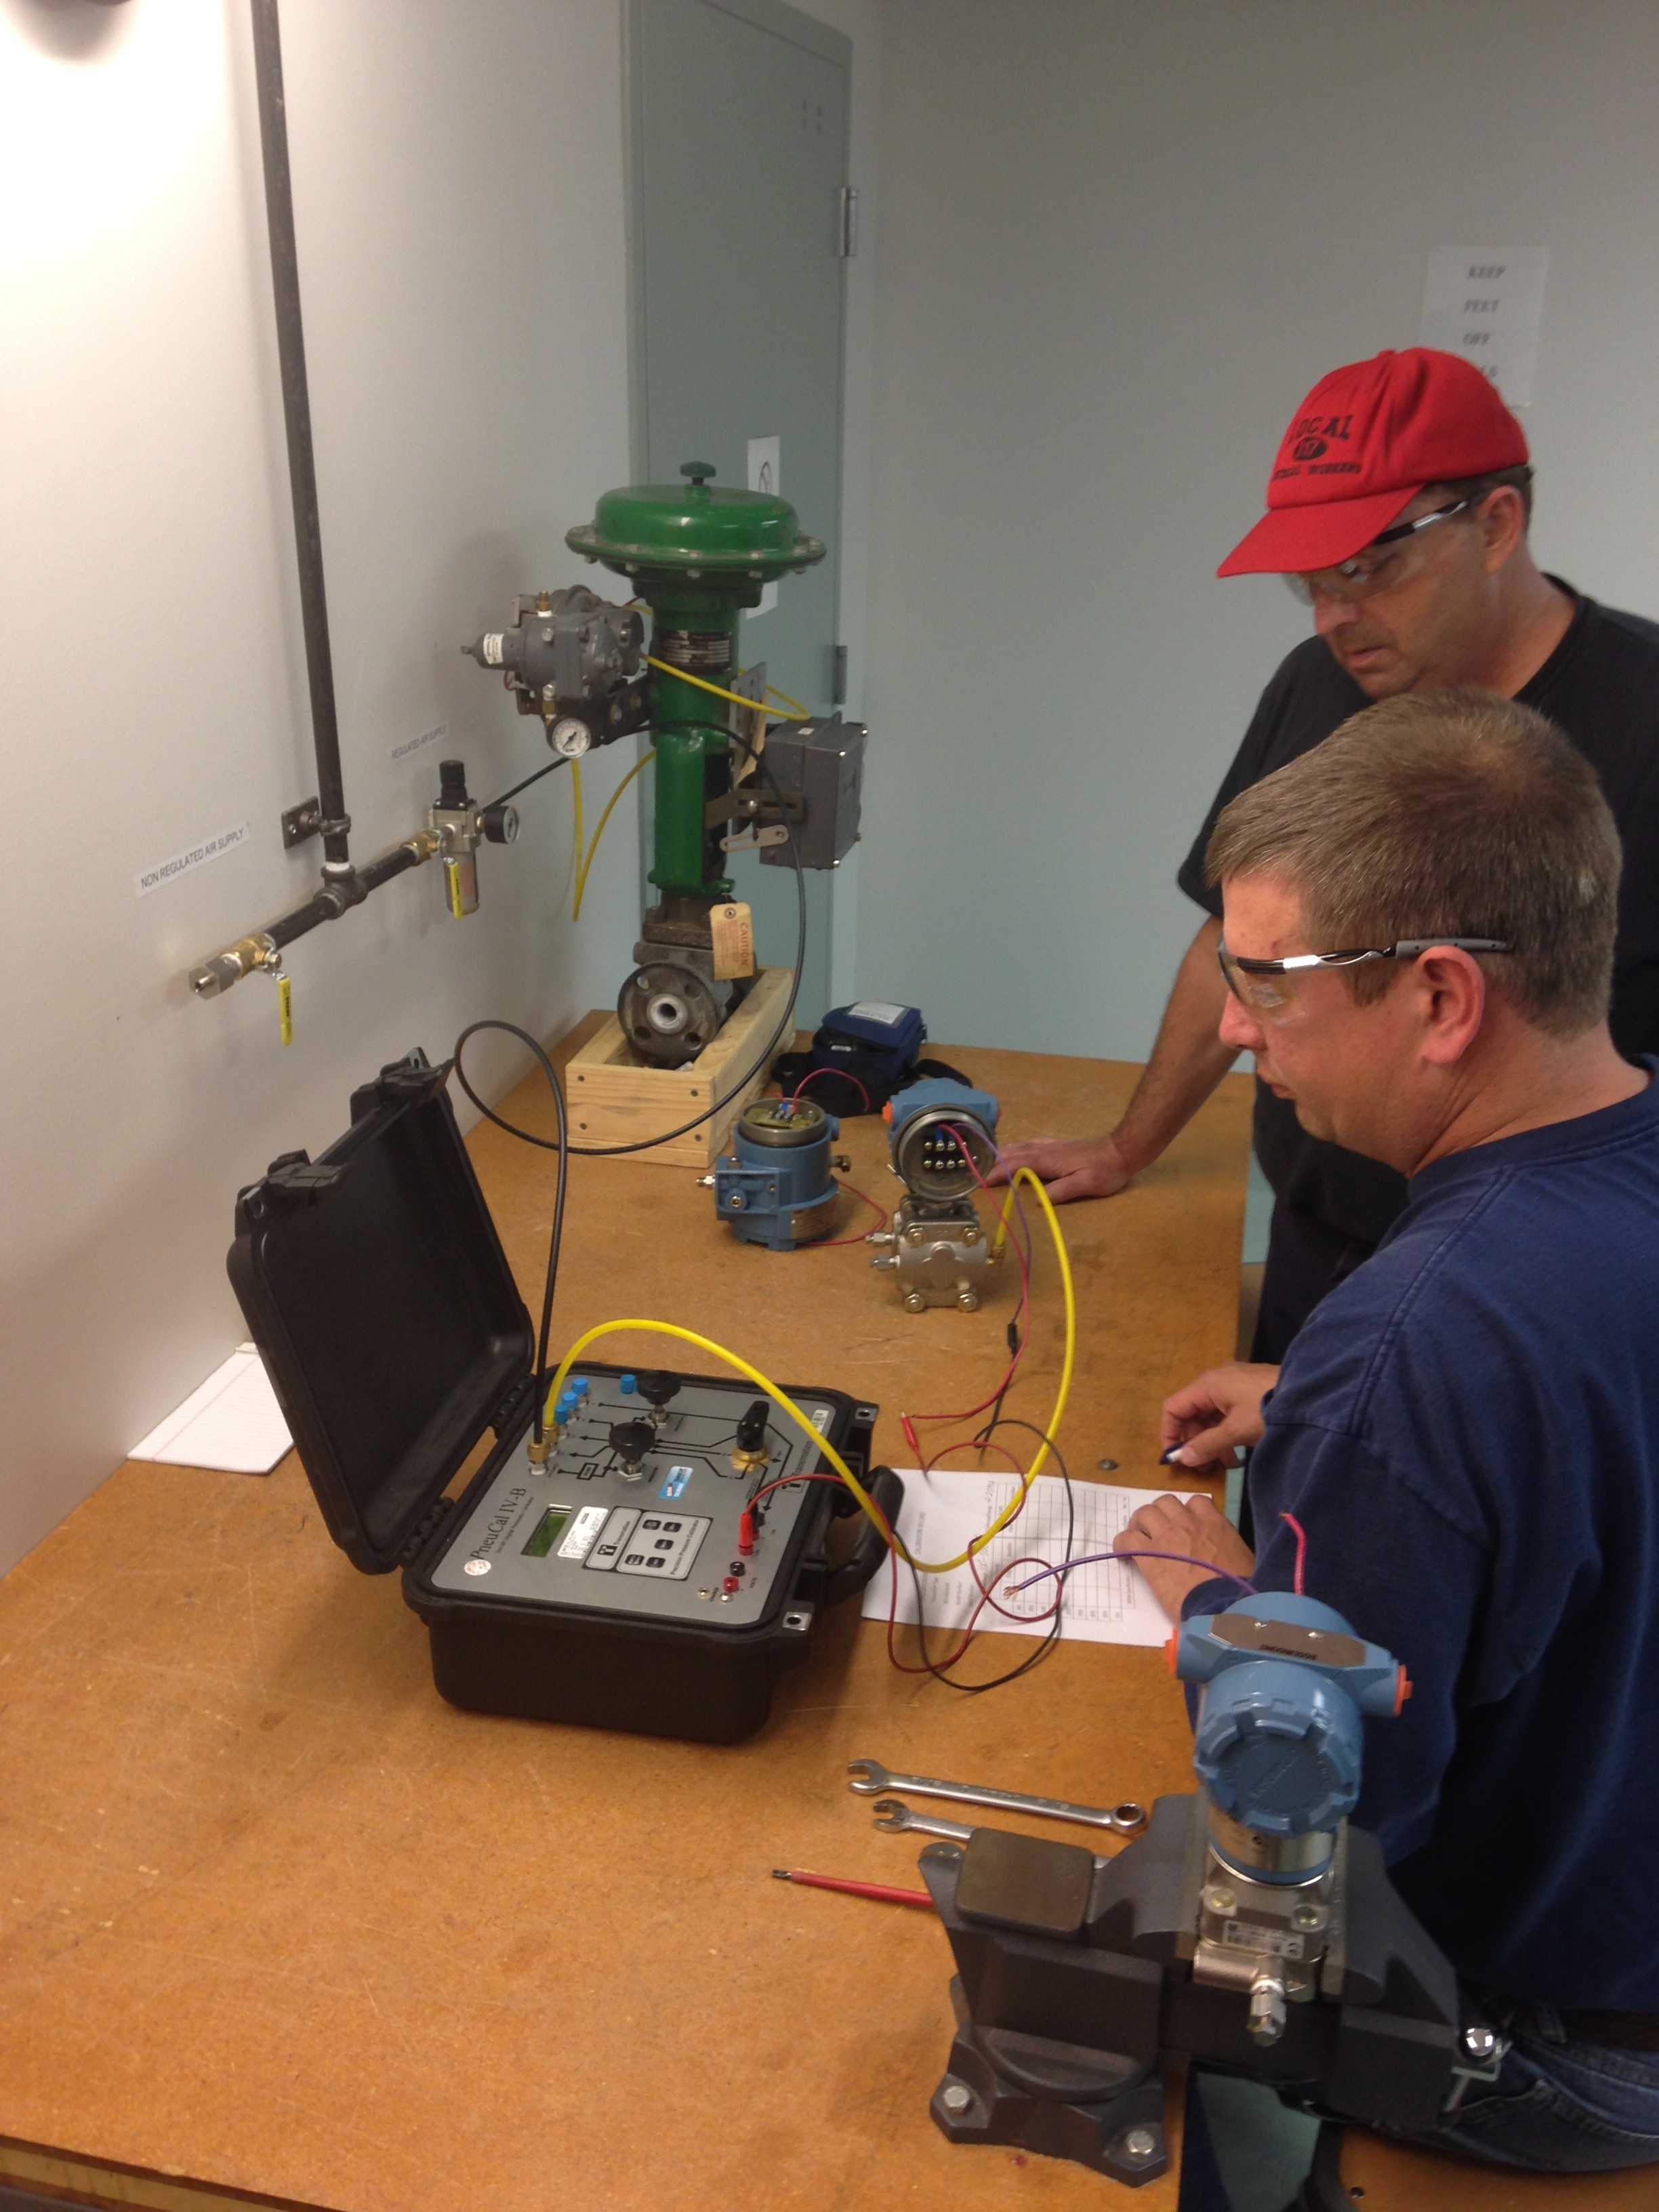 Electrical apprentices receiving training and instruction